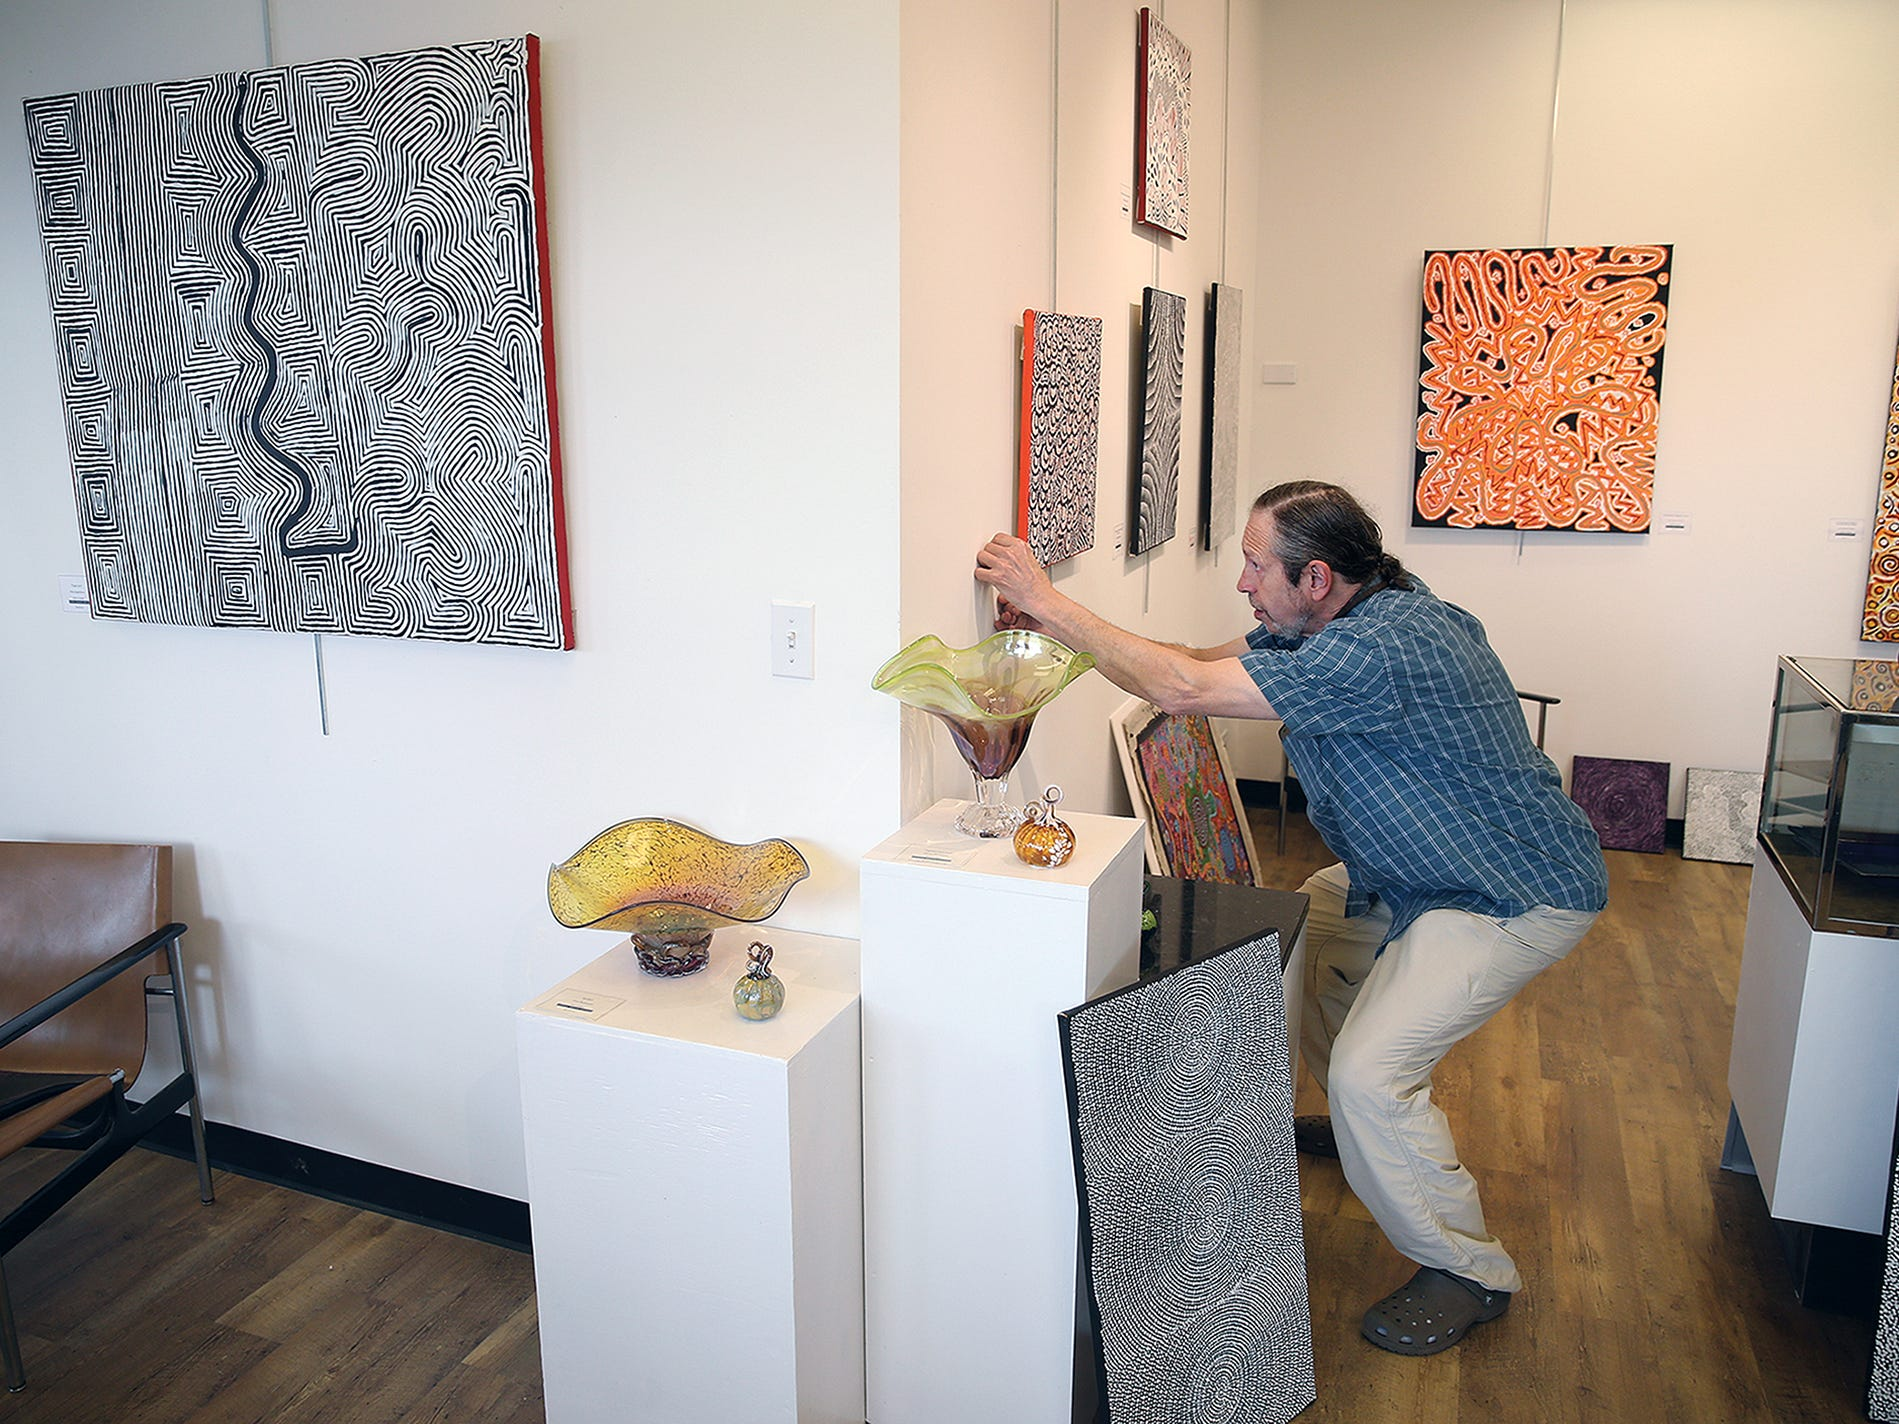 Jeffrey Moose lines up a painting to hang in his gallery located on Bainbridge Island's Winslow Way. He specializes in aboriginal Australian art.